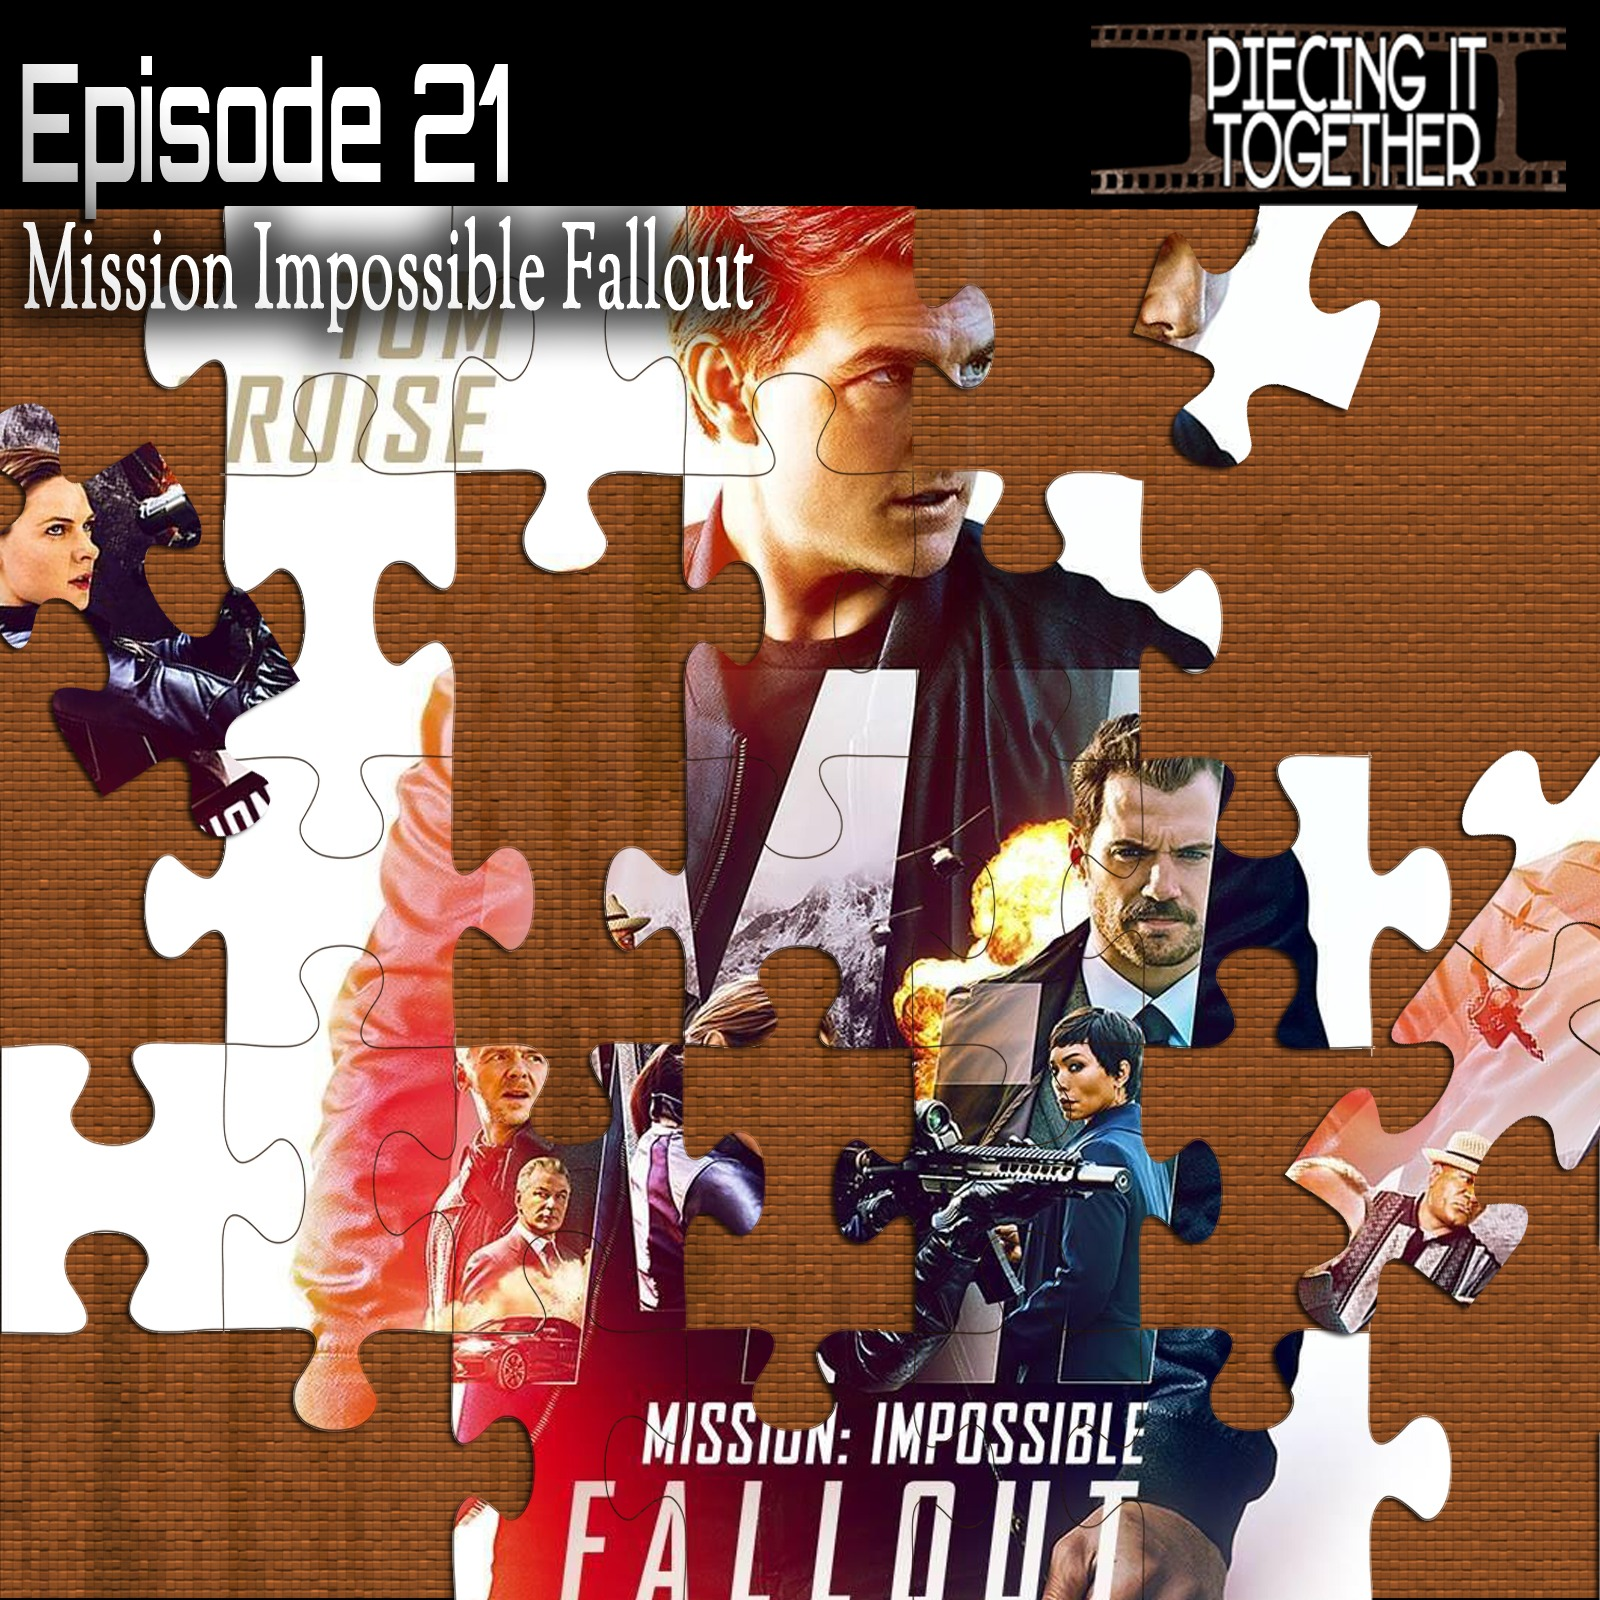 Mission: Impossible Fallout (Featuring Brian Garth)